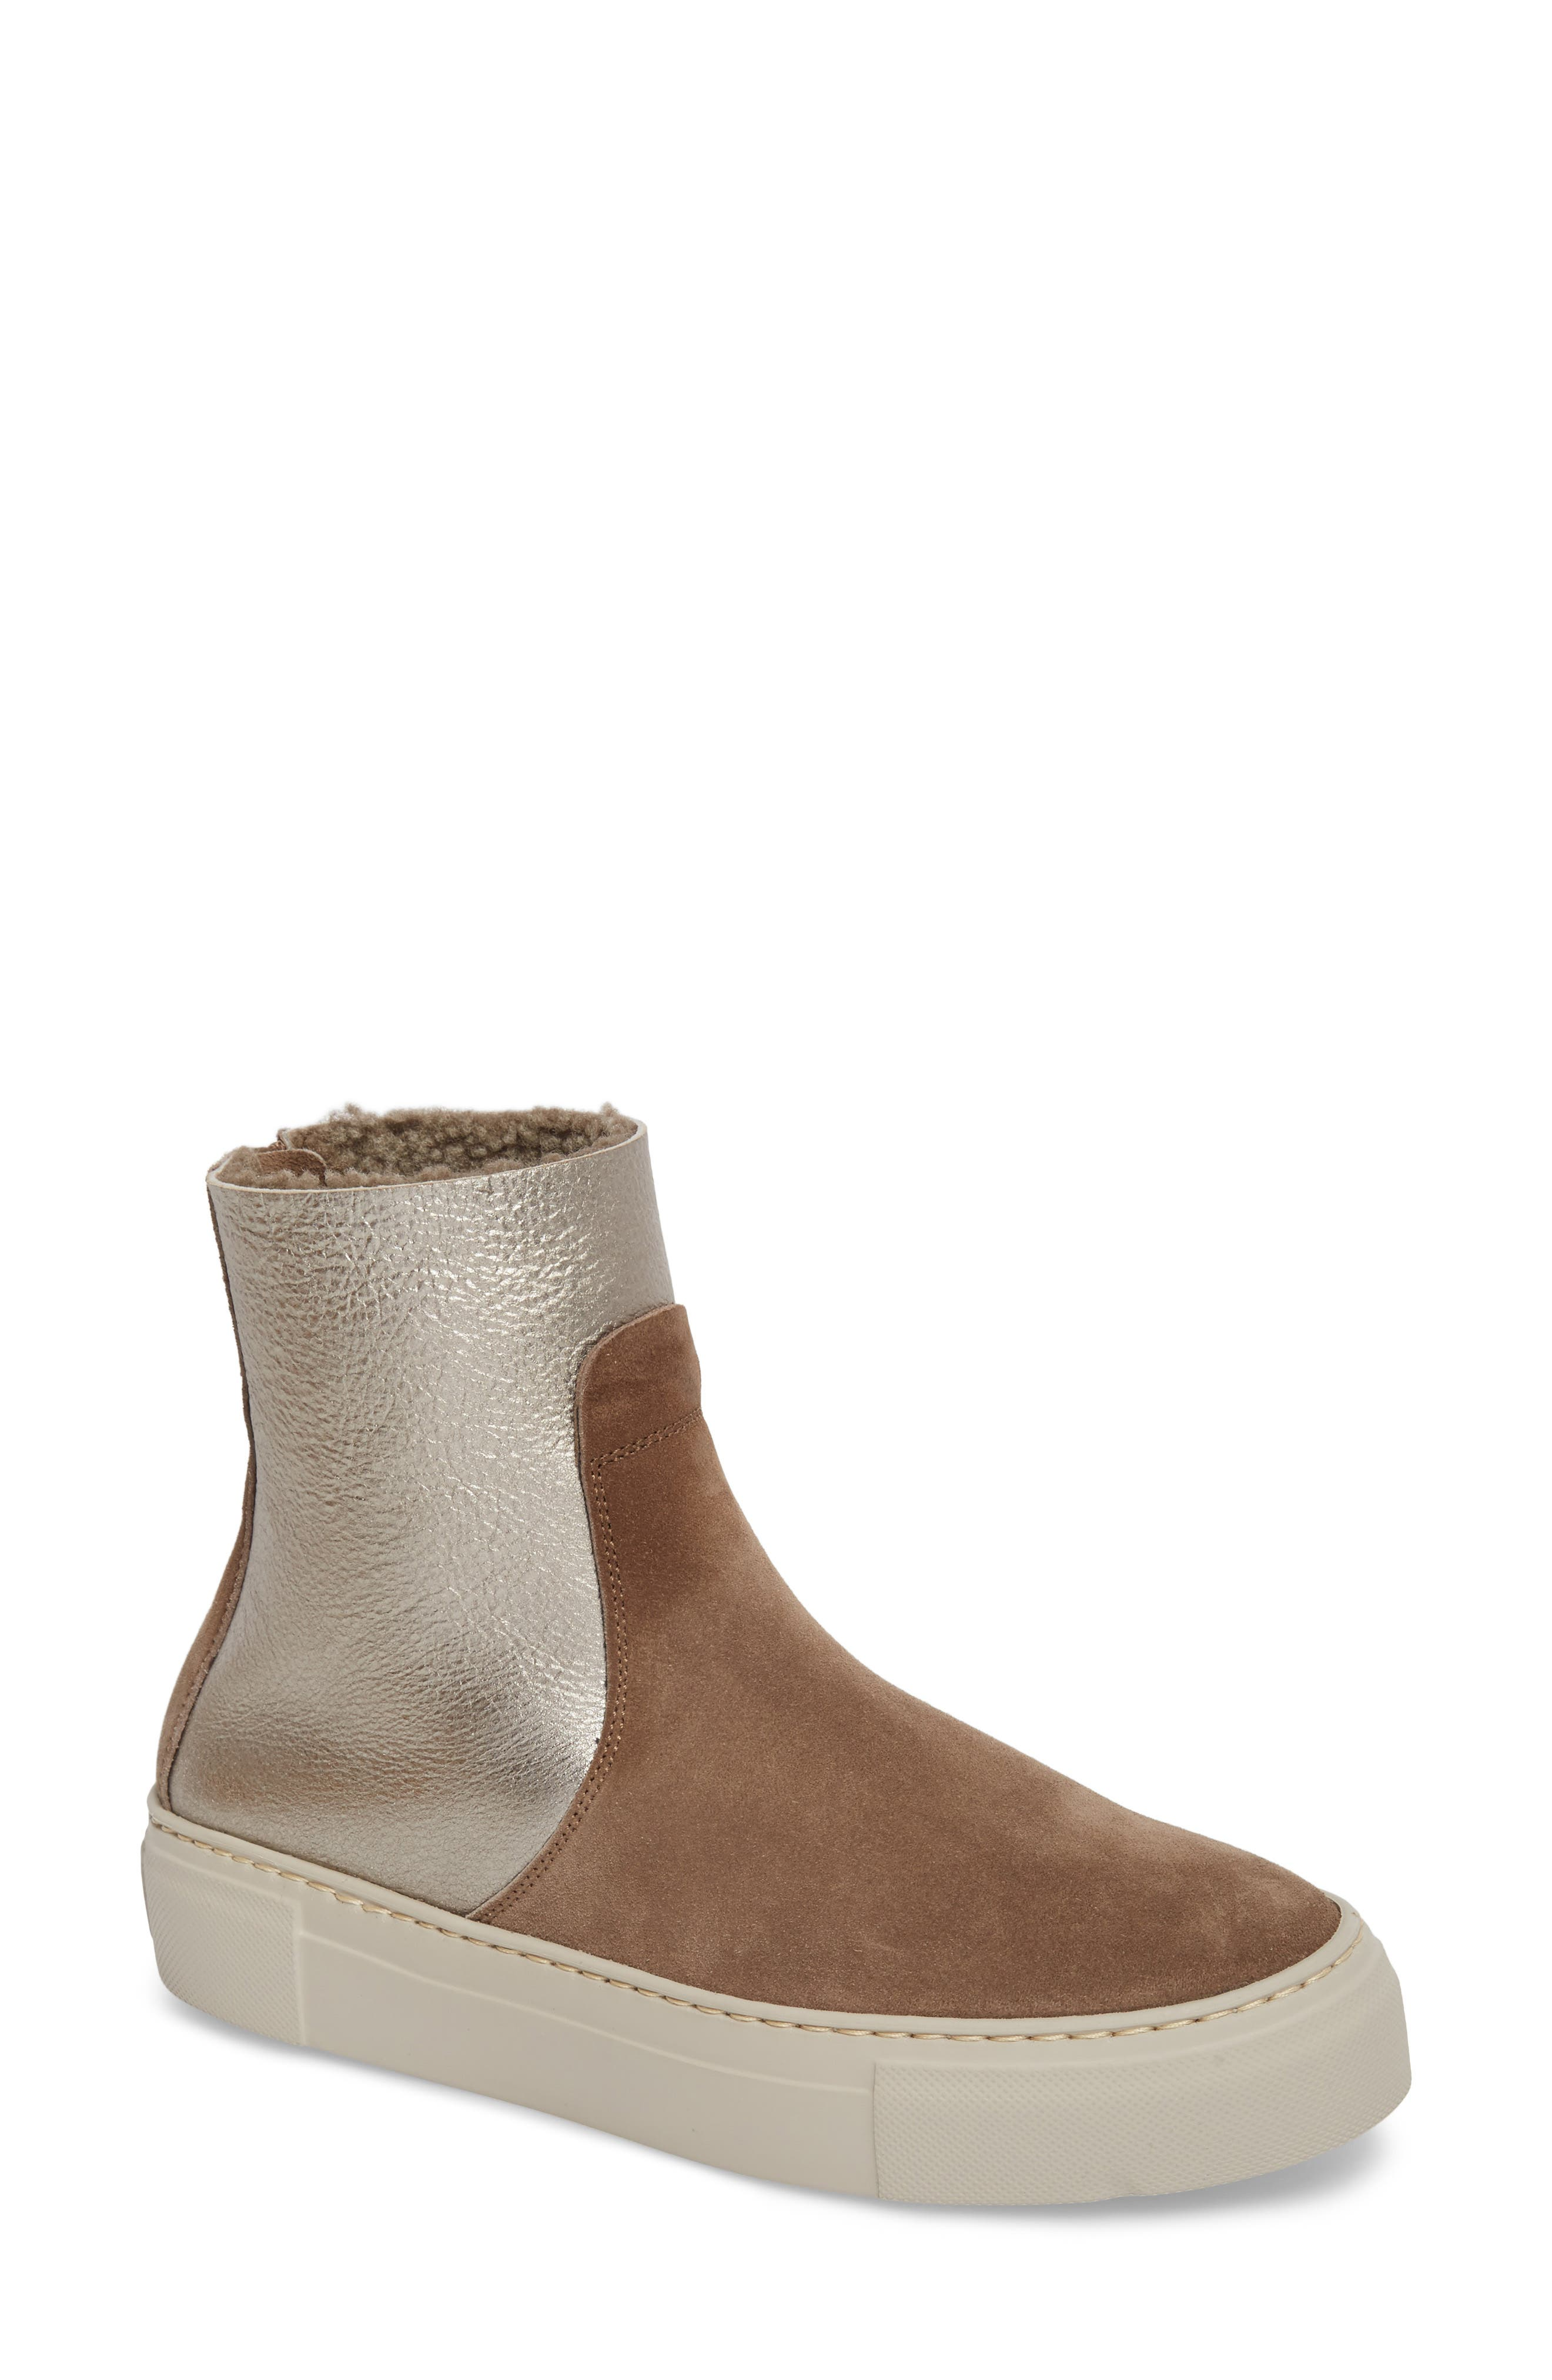 Alternate Image 1 Selected - AGL Sport Genuine Shearling Lined Bootie (Women)